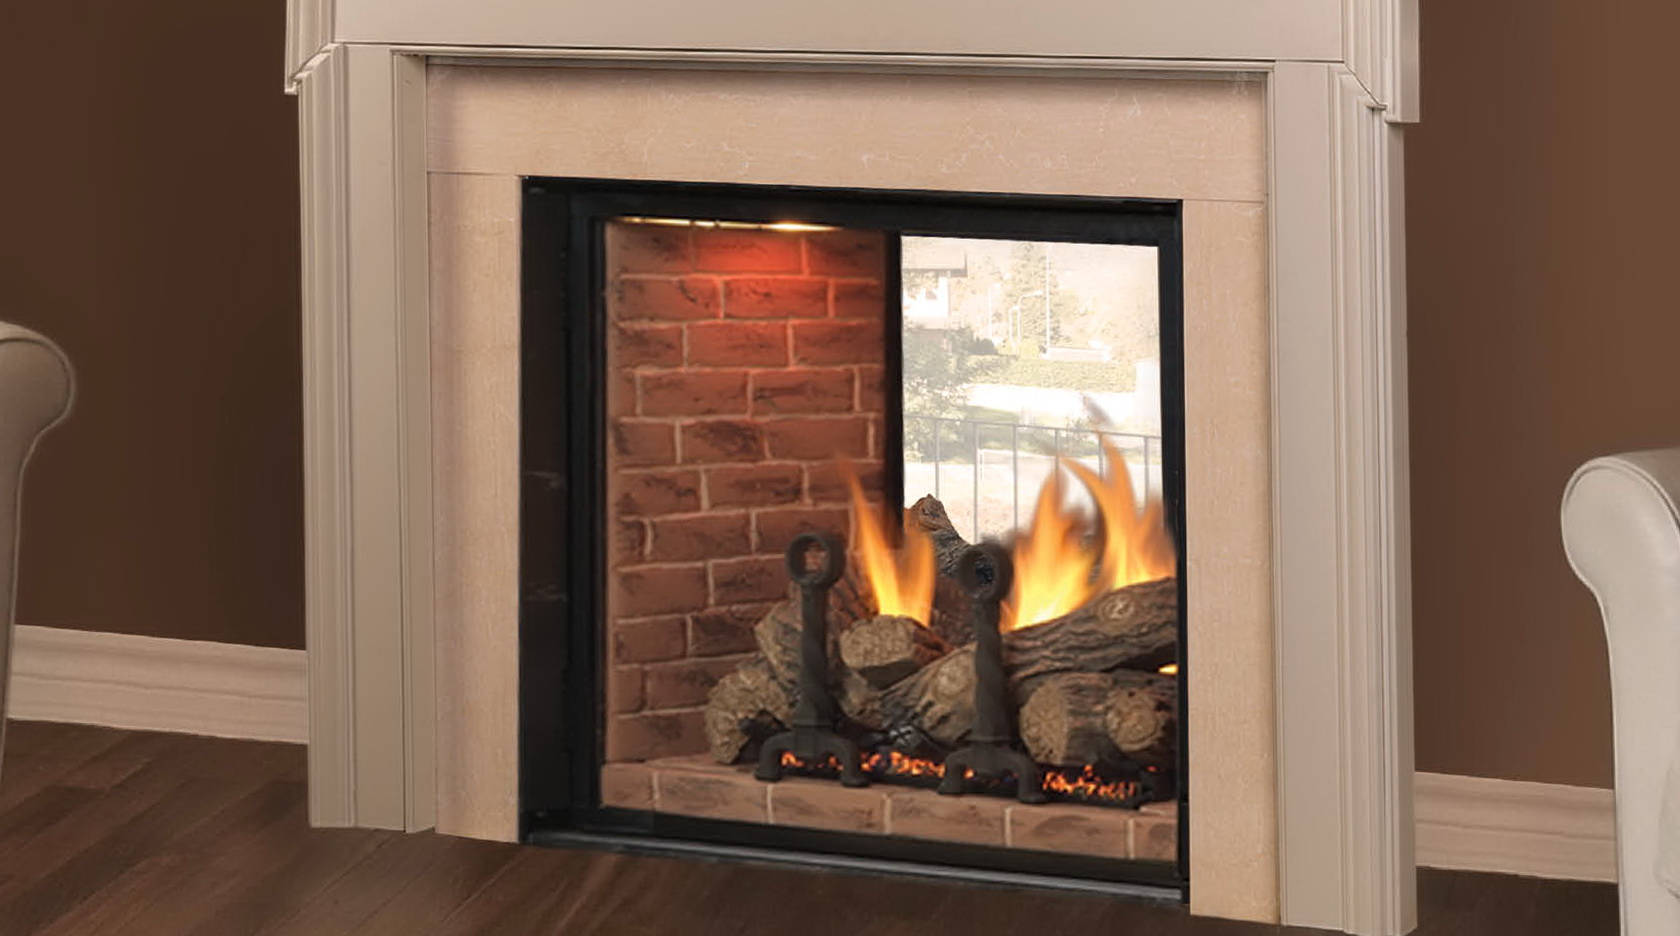 Knowing Direct Vent Fireplace 100 Direct Vent Wood